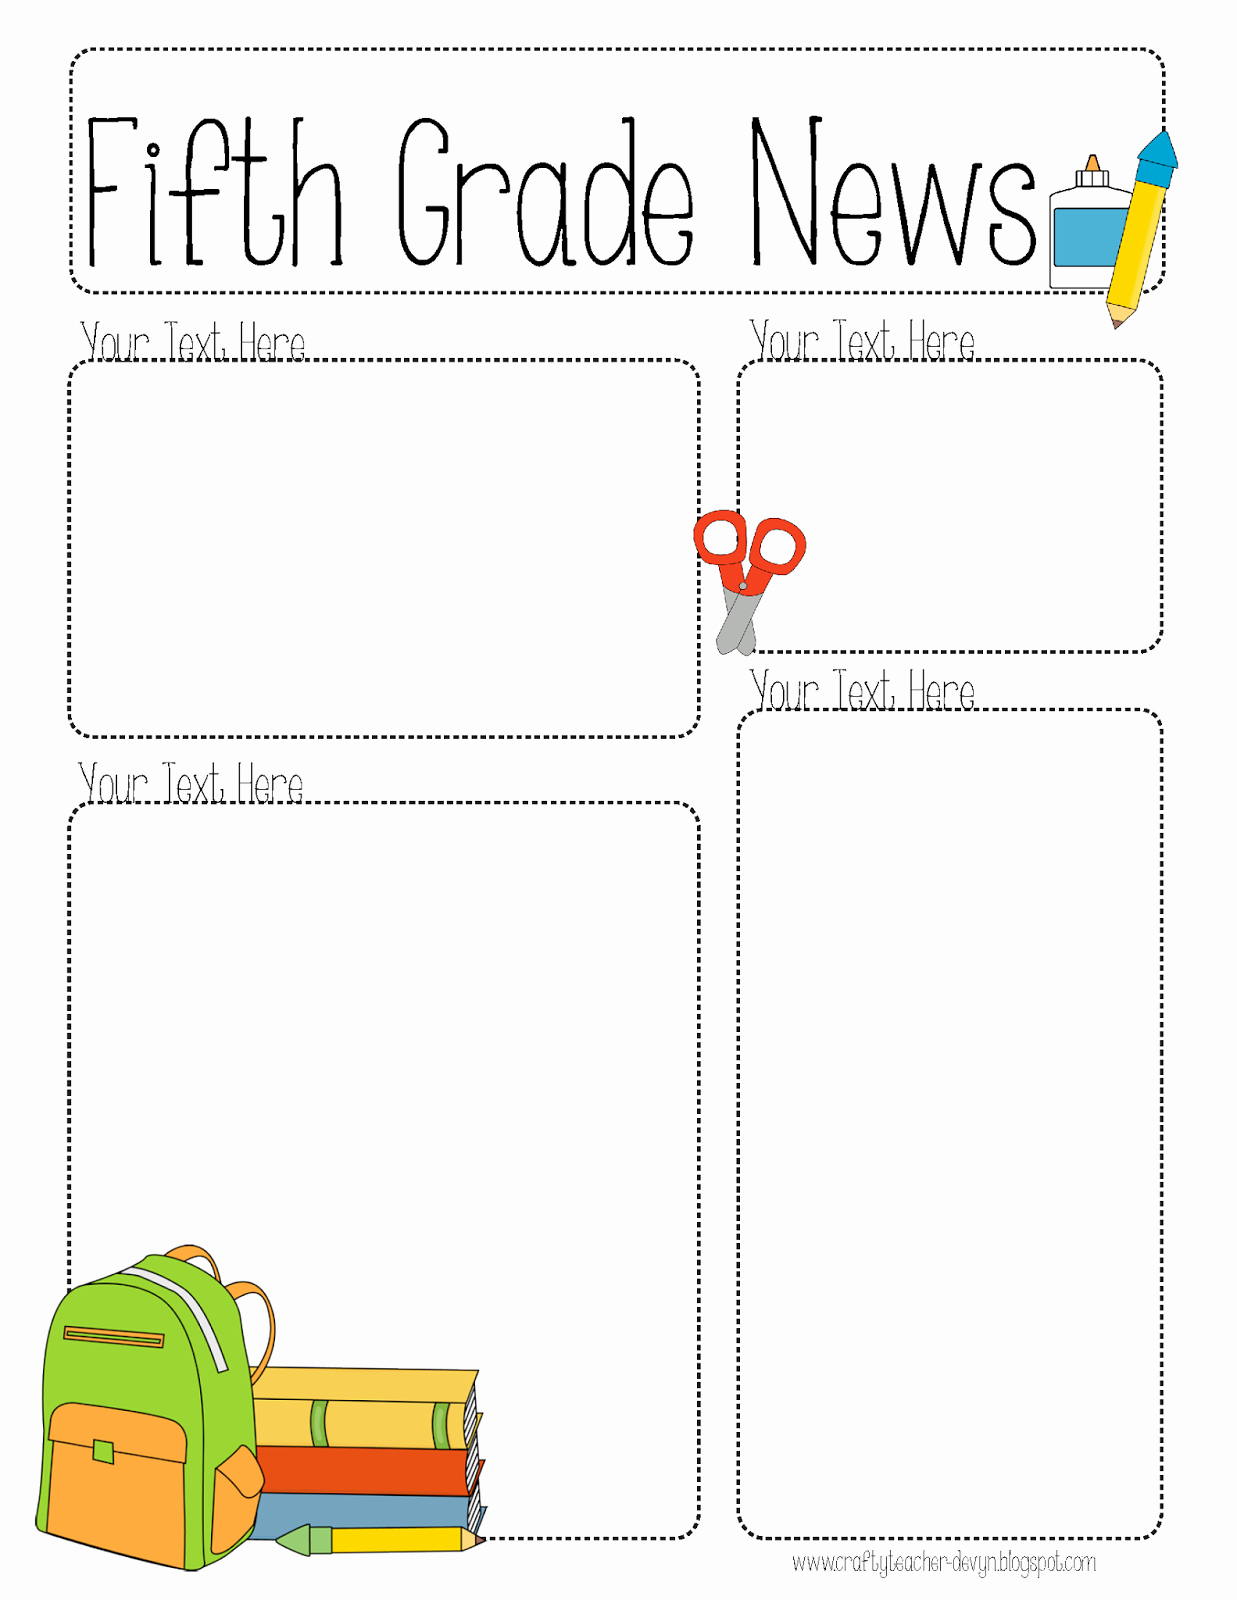 Free Newsletter Templates for Teachers Inspirational Pletely Editable Newsletter for All Grades